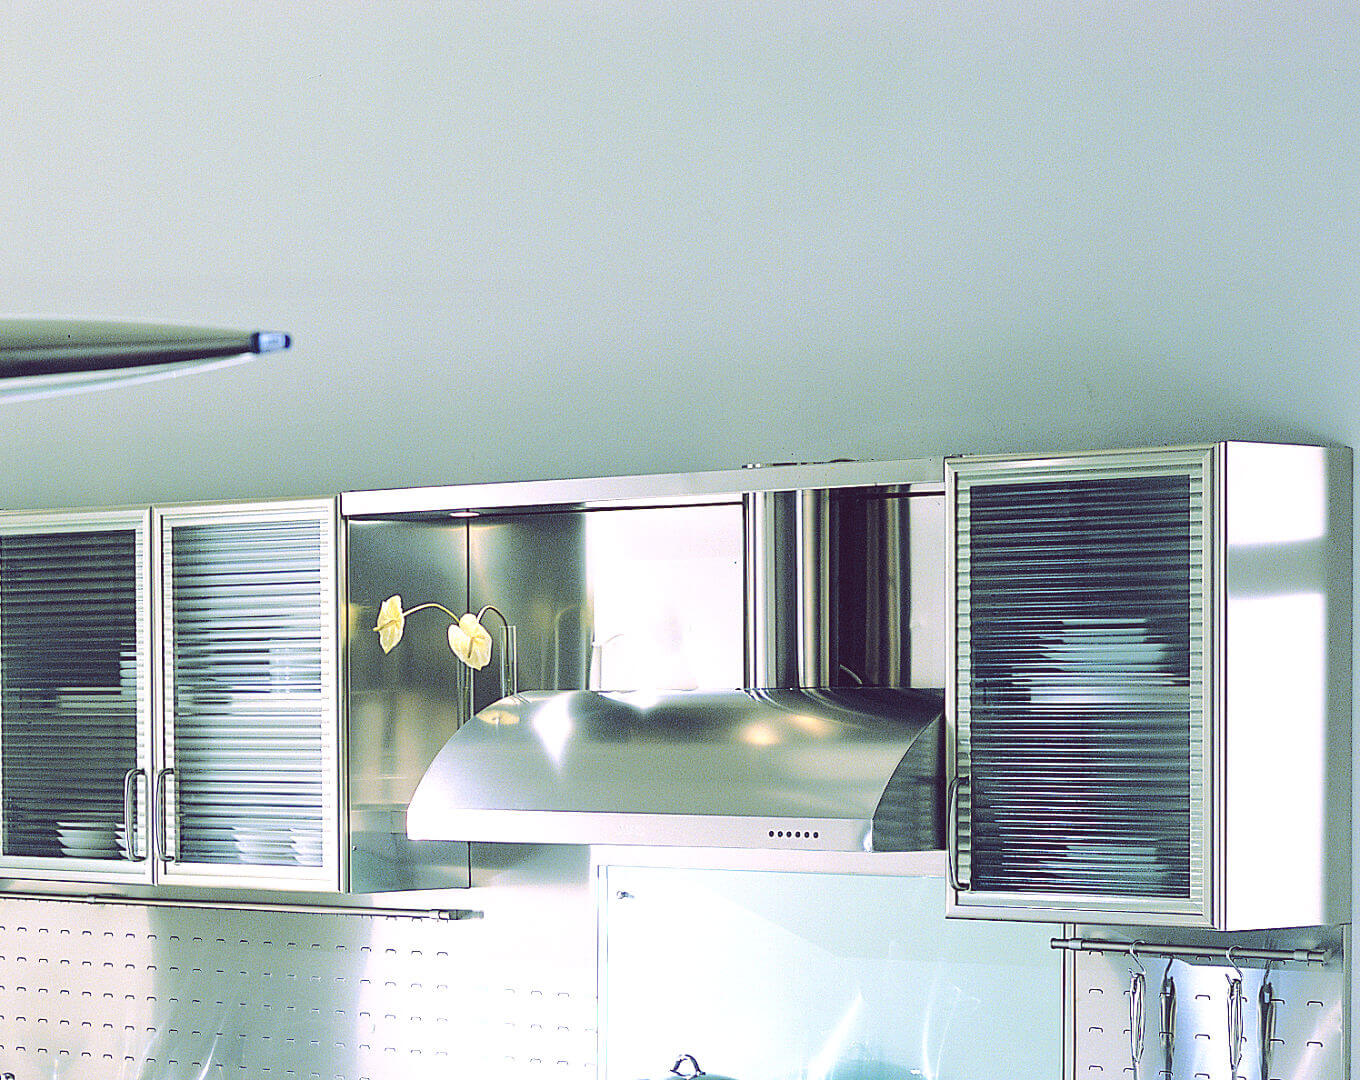 Arca Cucine Italy - Kitchen maid in Stainless Steel and Glass - Wagon - Cupboards and extraction